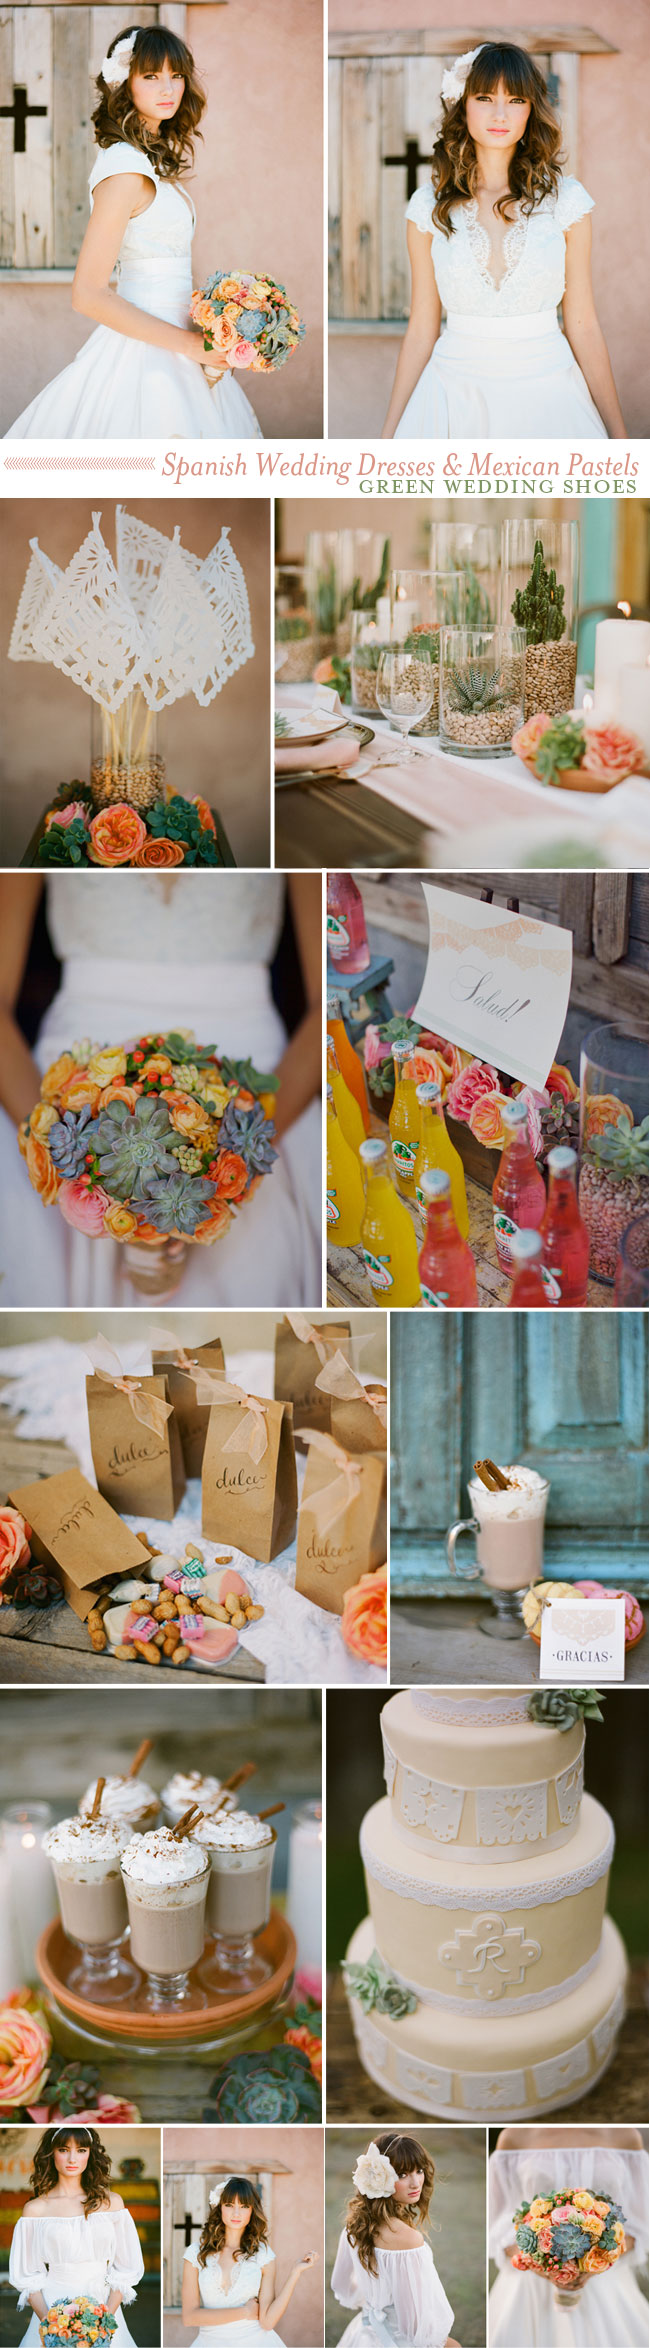 greenweddingshoes-spanish